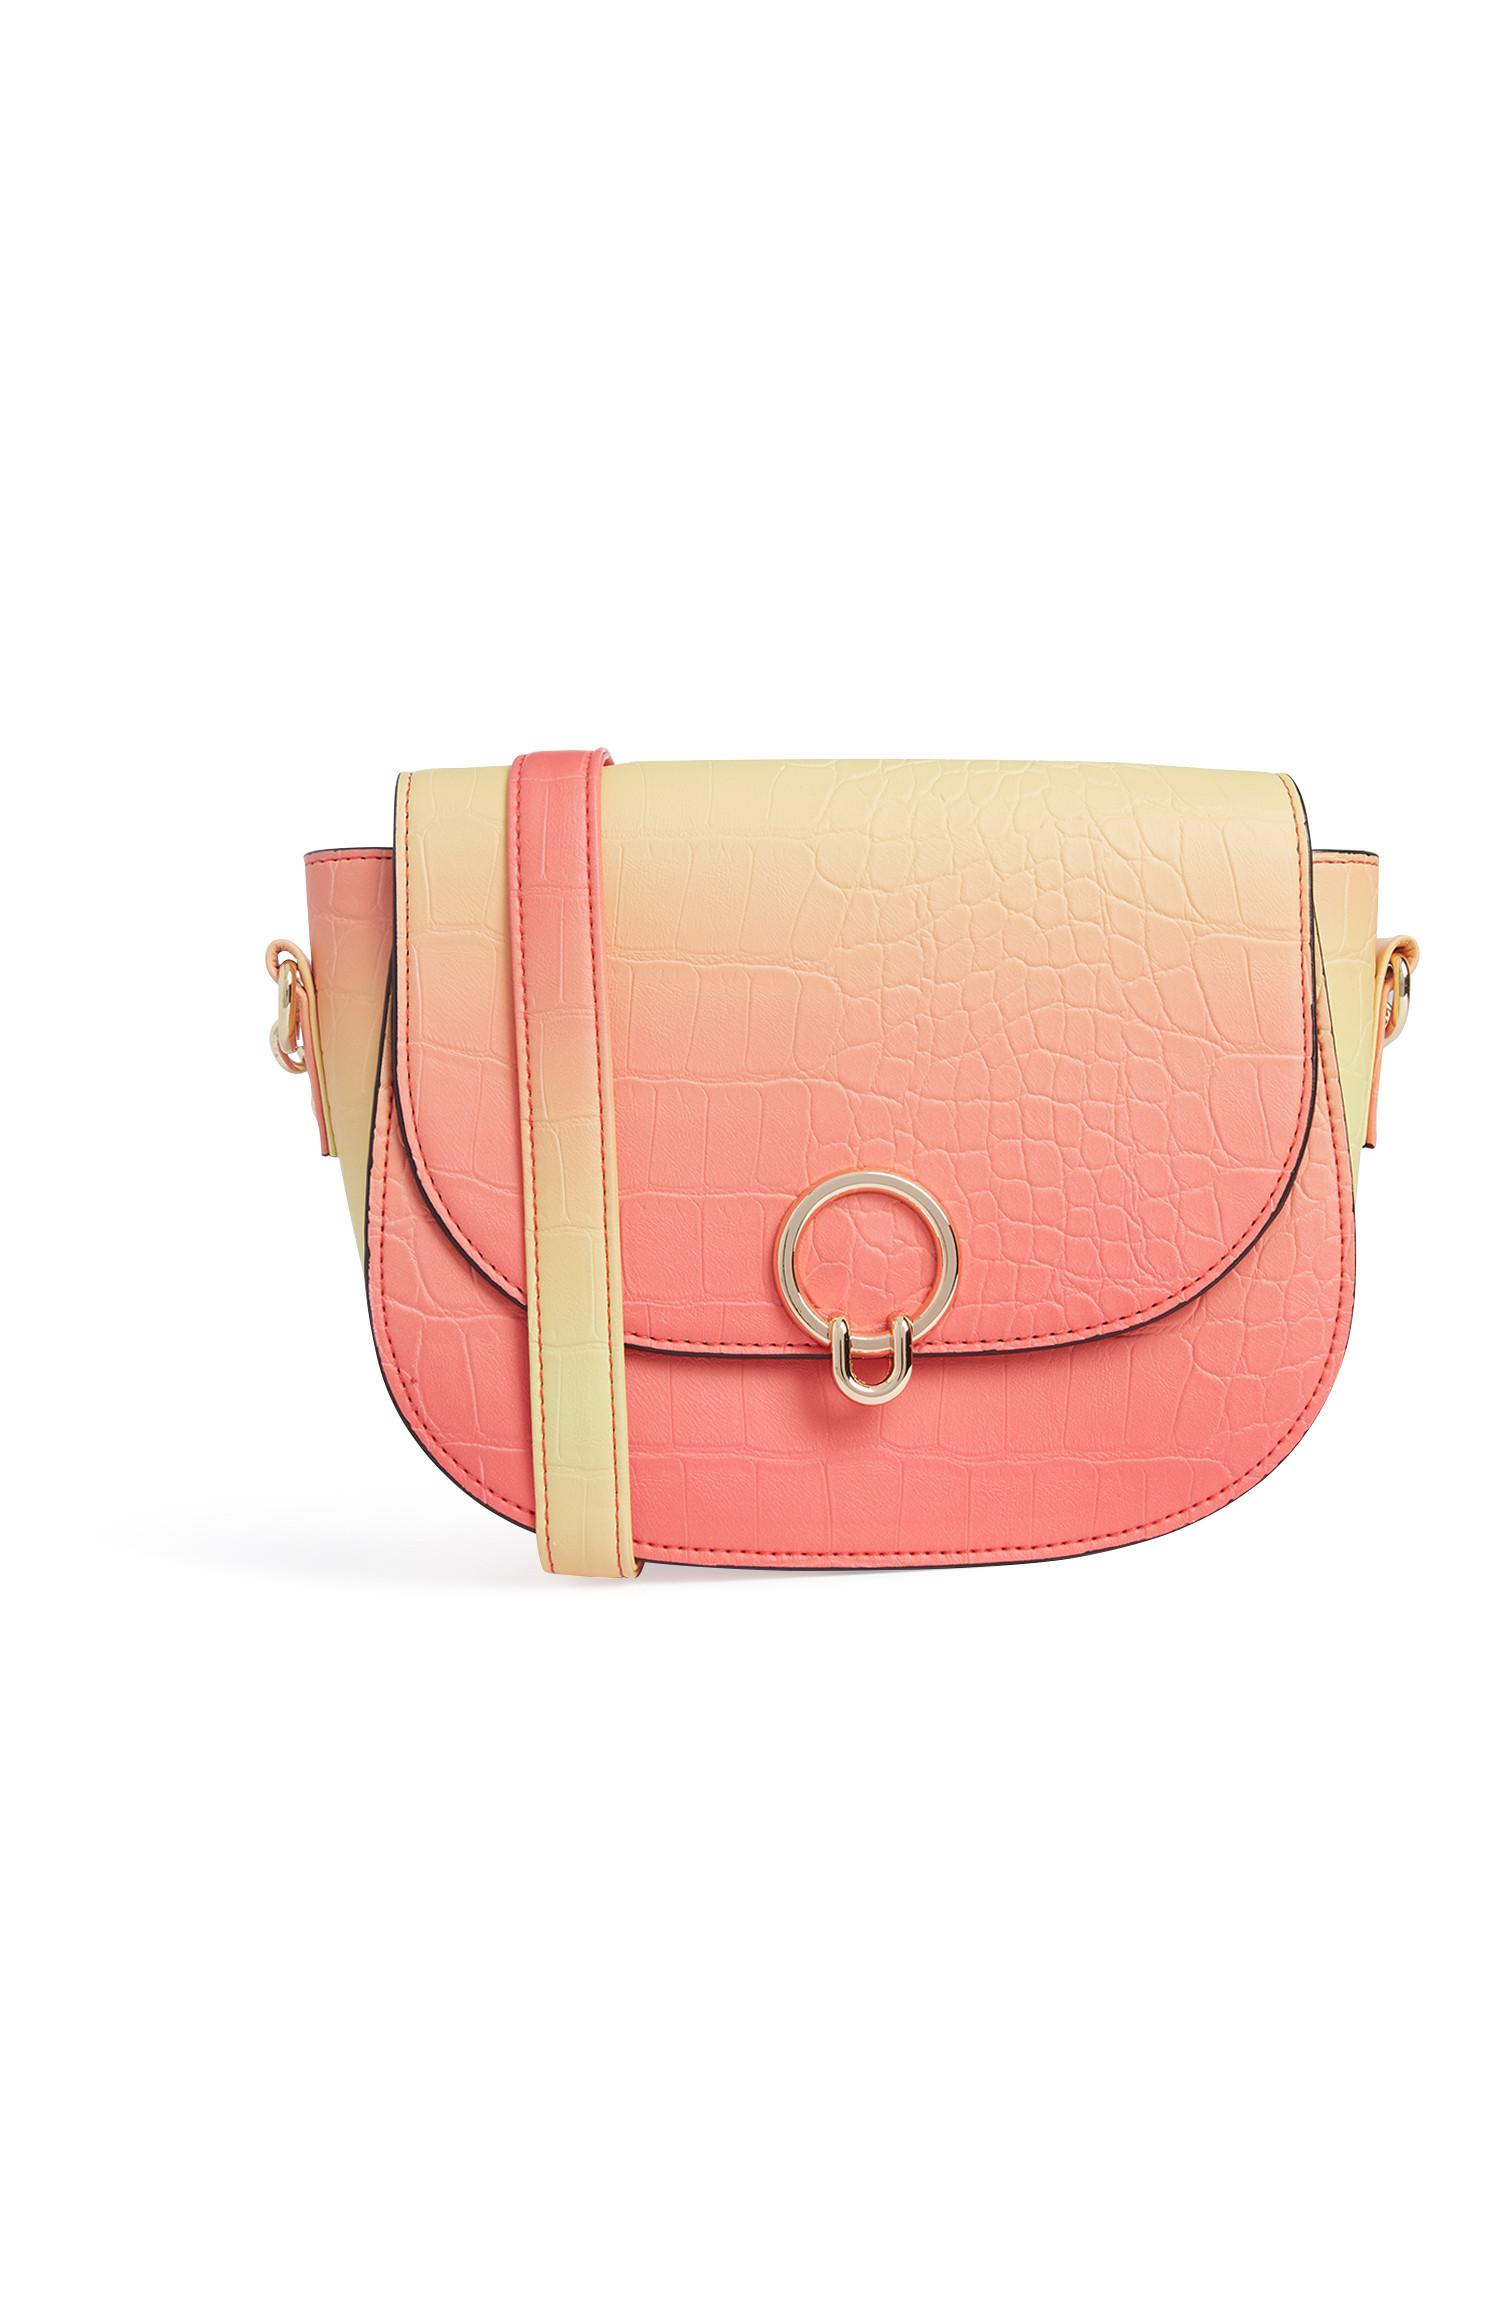 Blush Saddle Bag